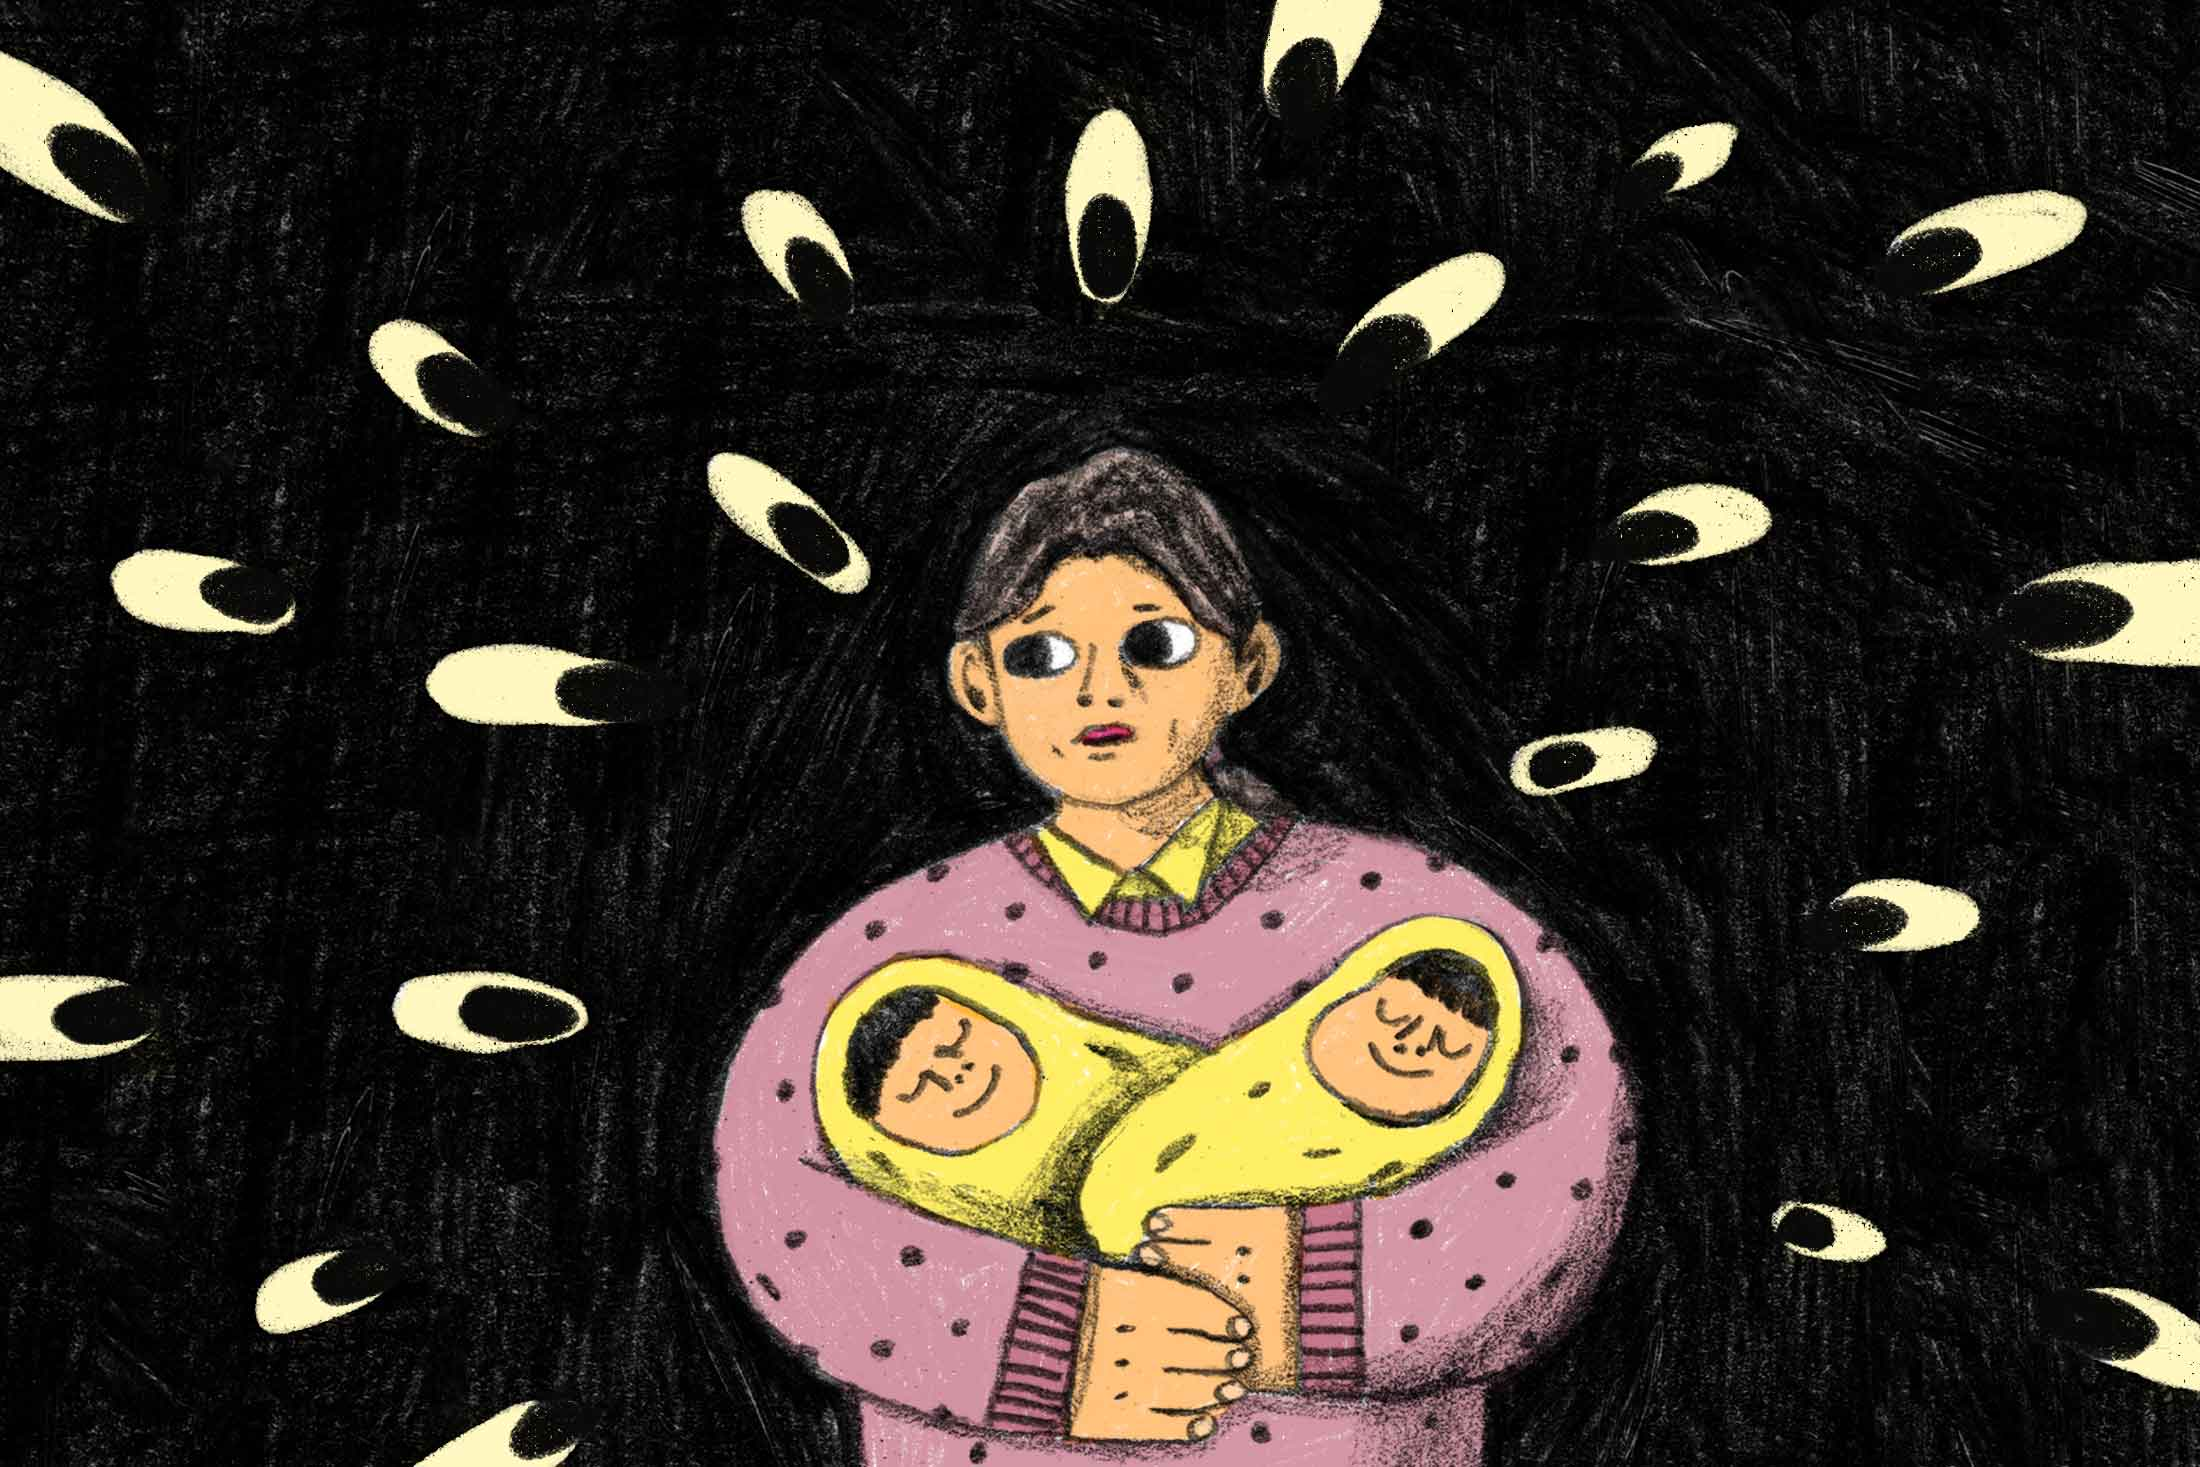 A mother holds her twin infants as several eyes peer through the darkness at her.